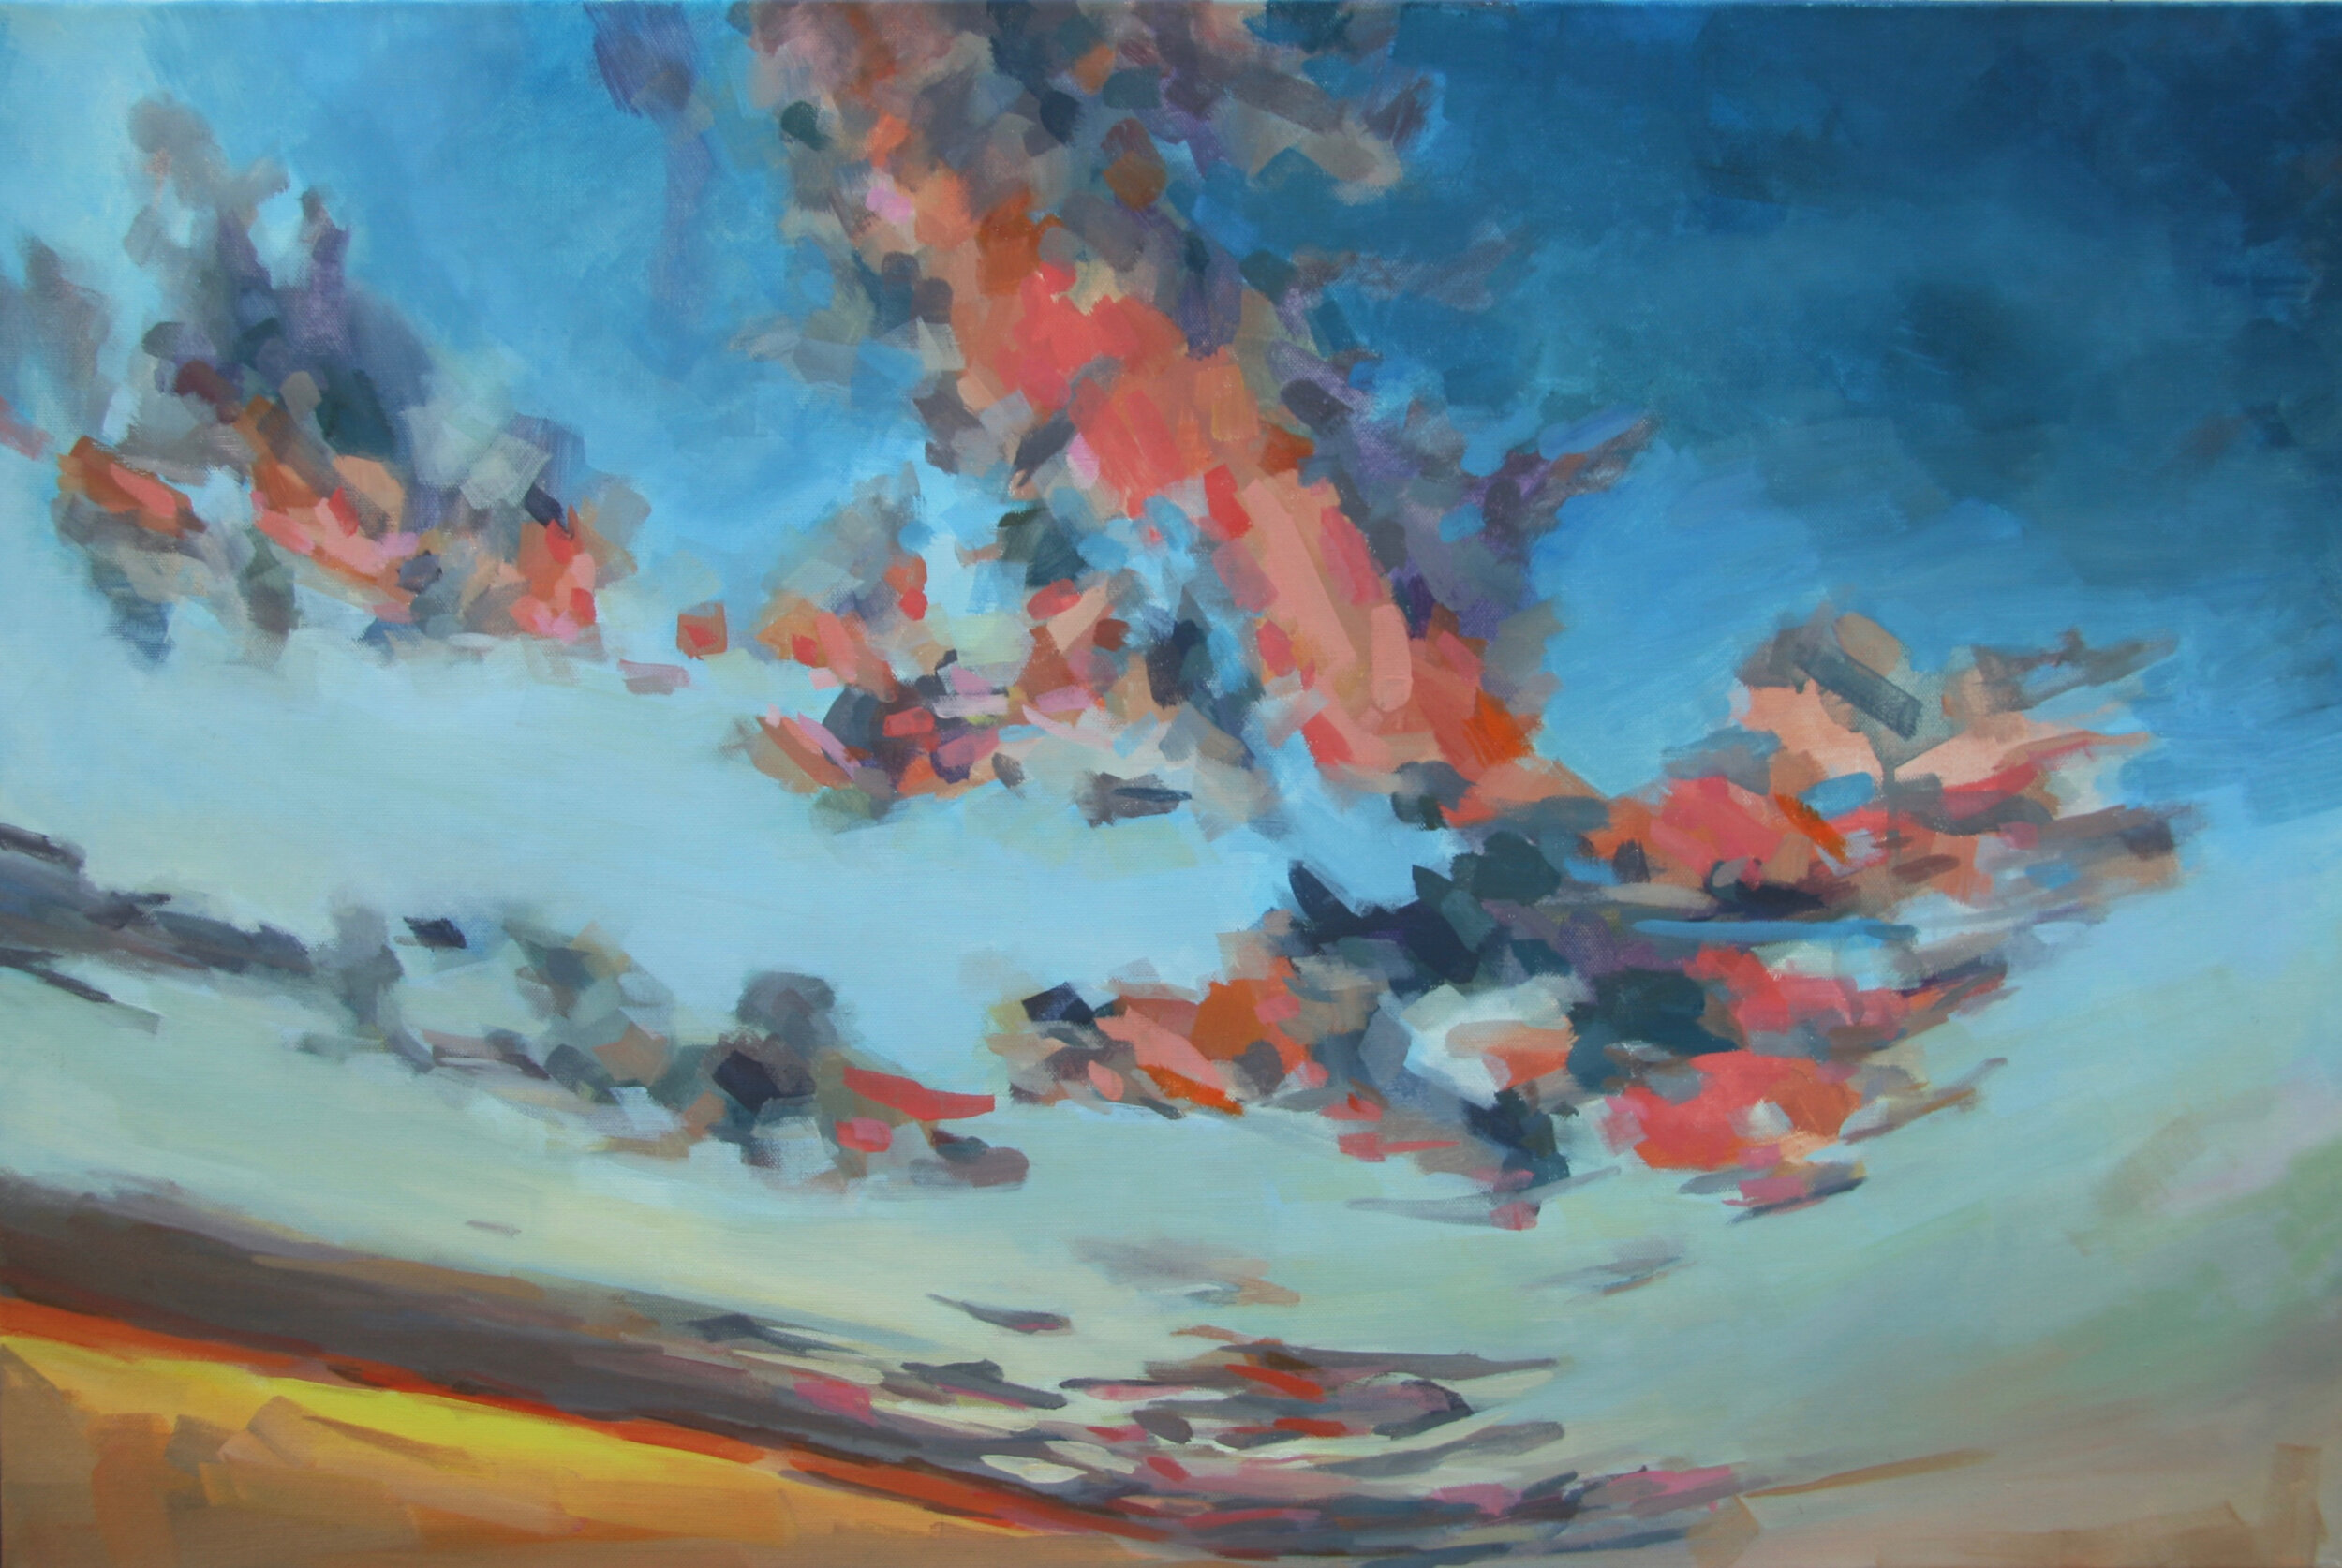 """'Twilight'  2015  30"""" x 20""""  water soluble oil on canvas  sold"""